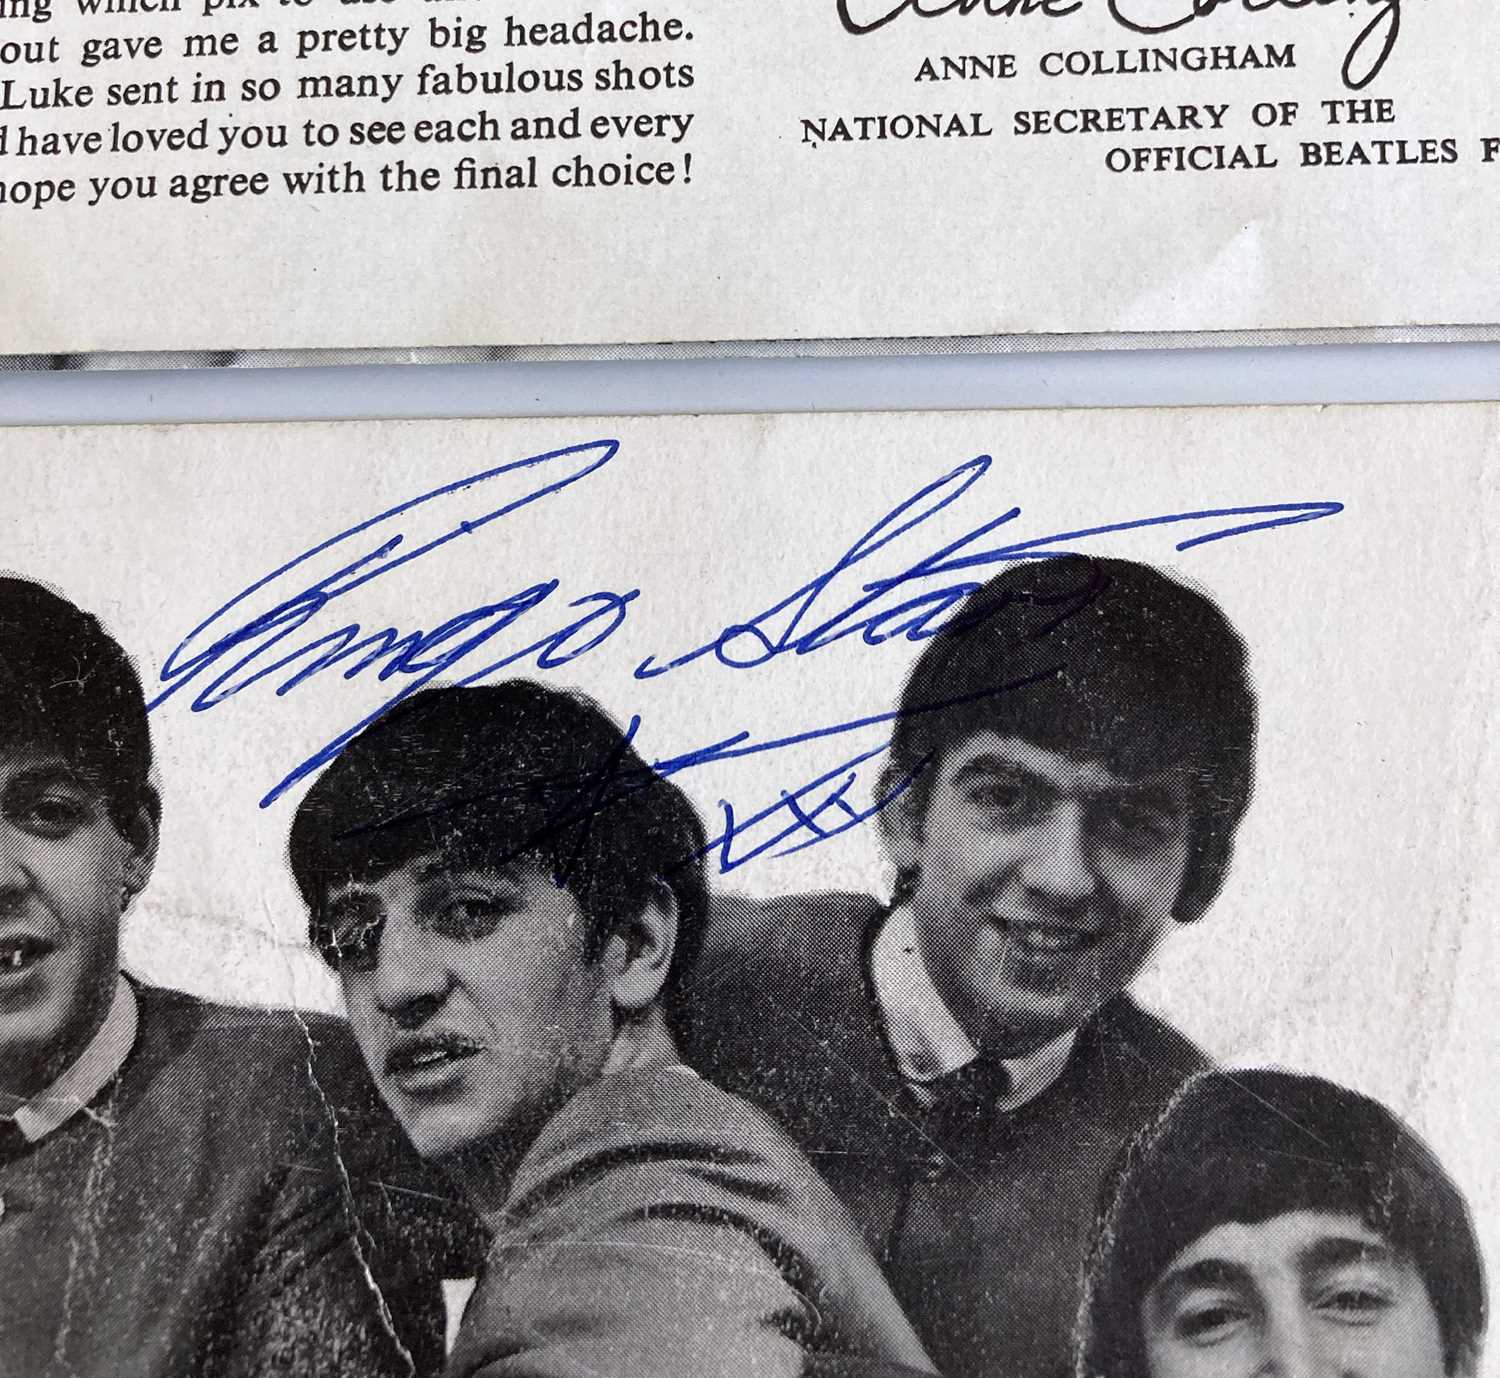 THE GREAT POP PROM PROGRAMME - SIGNED RINGO STARR CARD. - Image 2 of 2